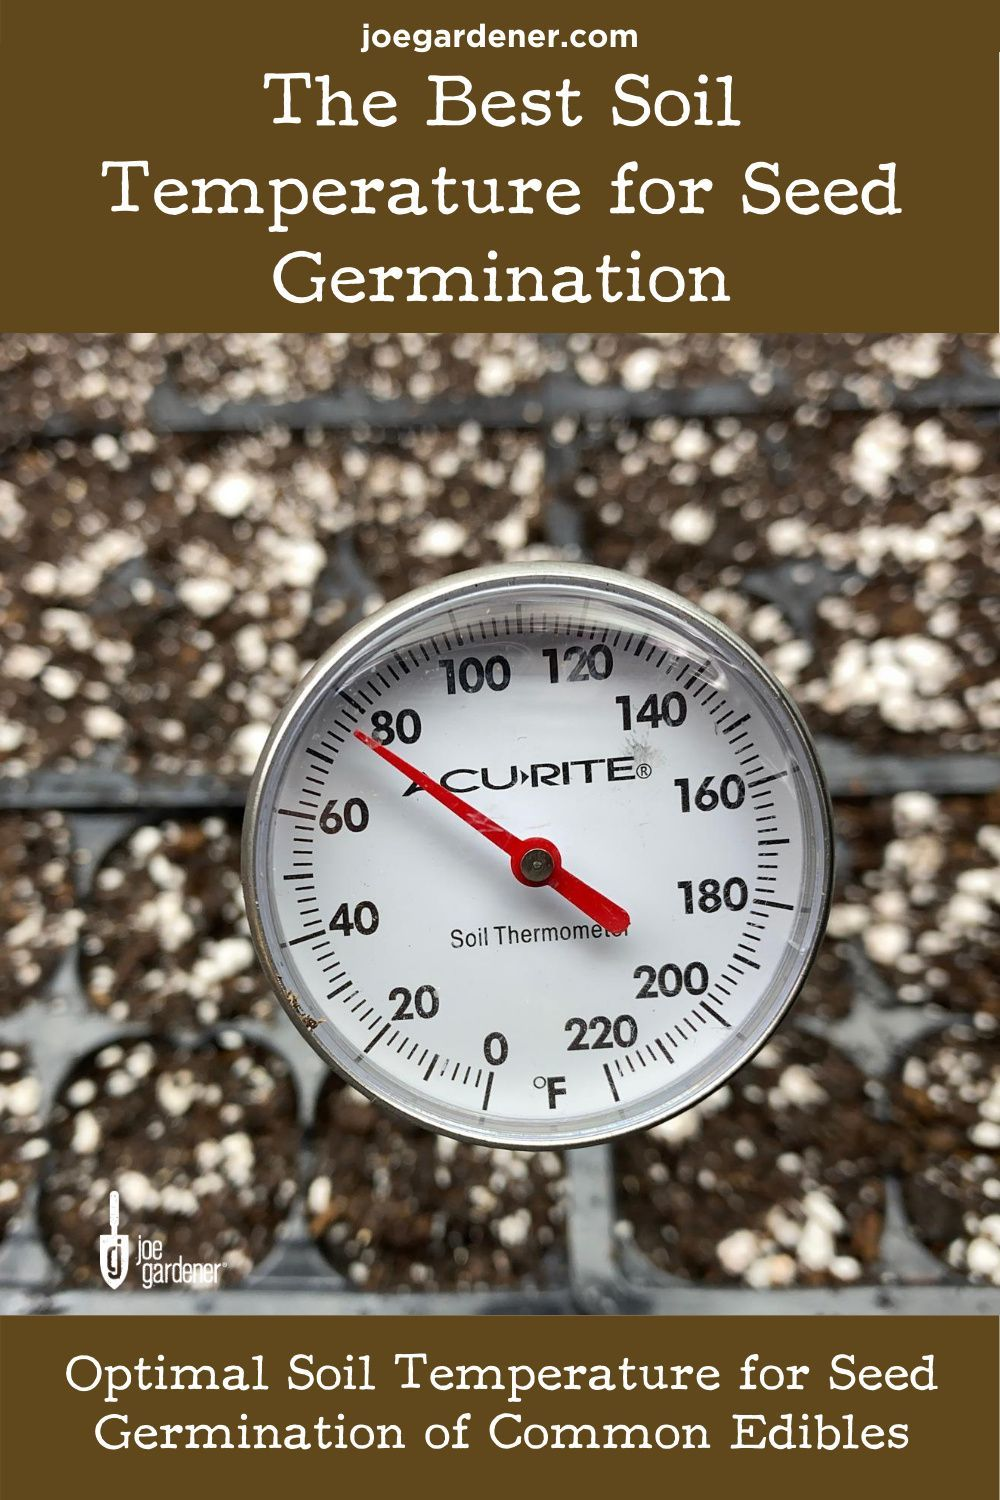 how long for grass seed to germinate in june